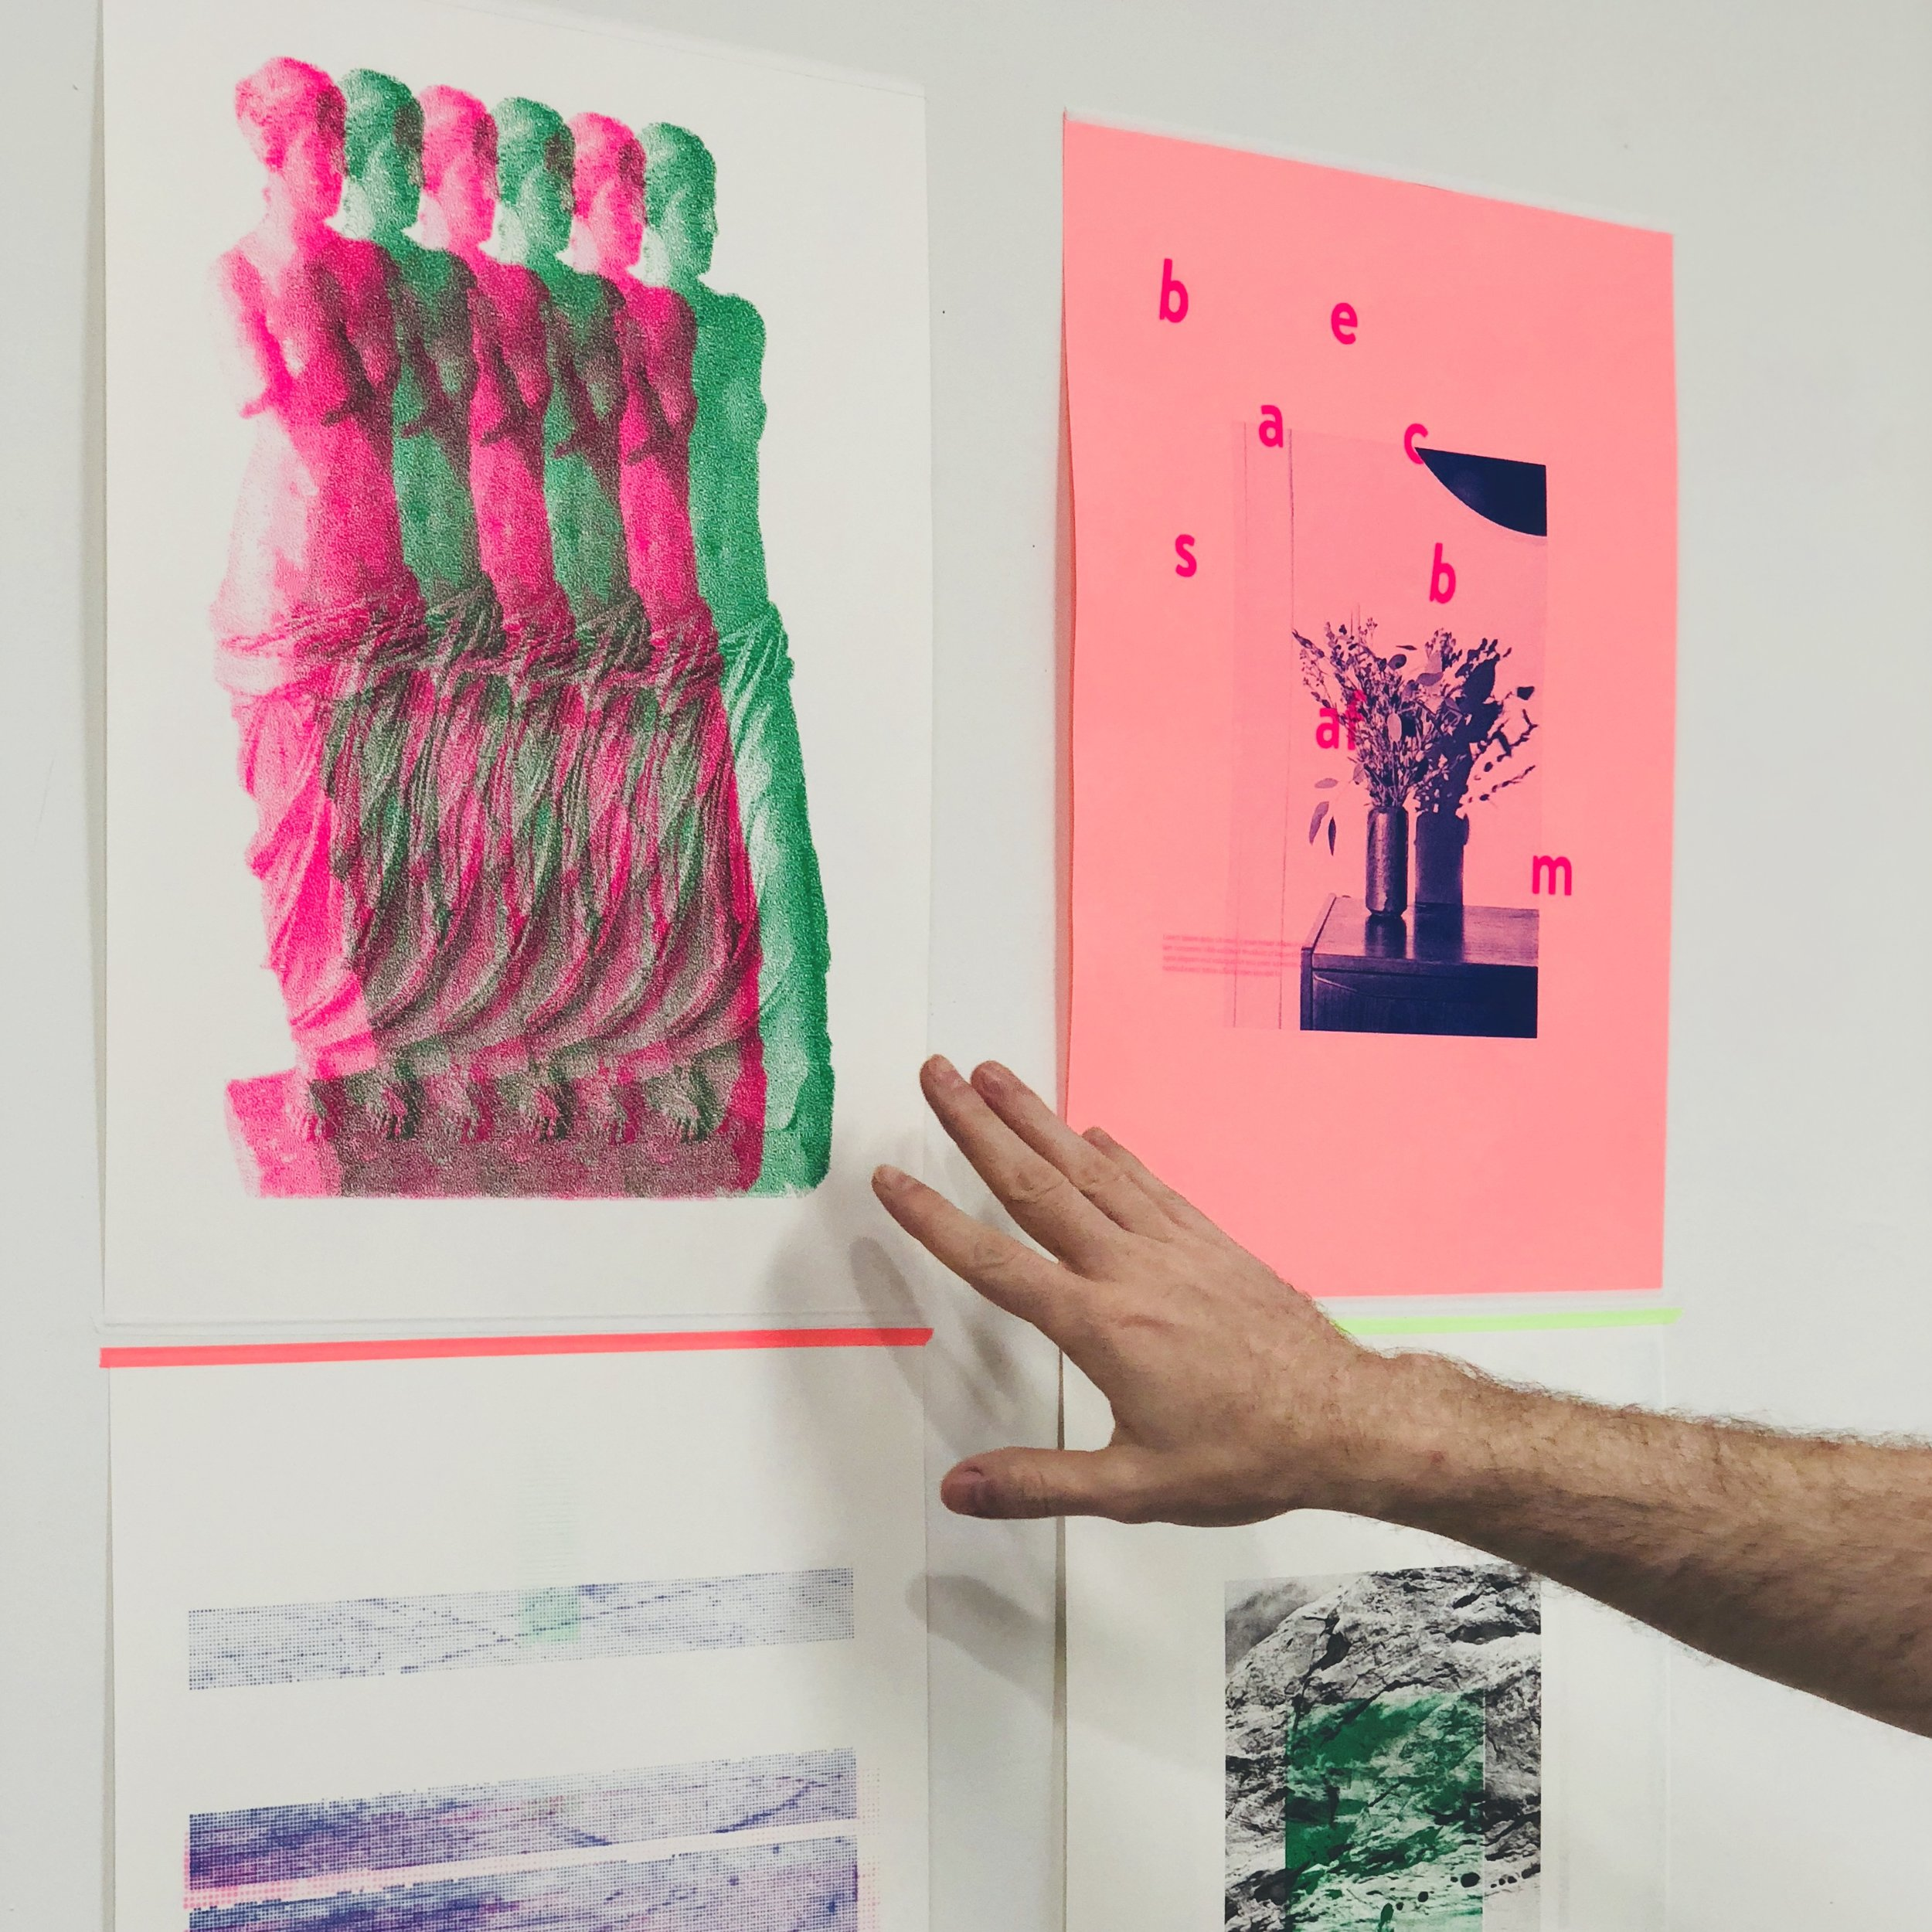 In-house posters printed via Risograph printers. Posters to be displayed in rooms and public spaces and designed in collaboration with various studios.